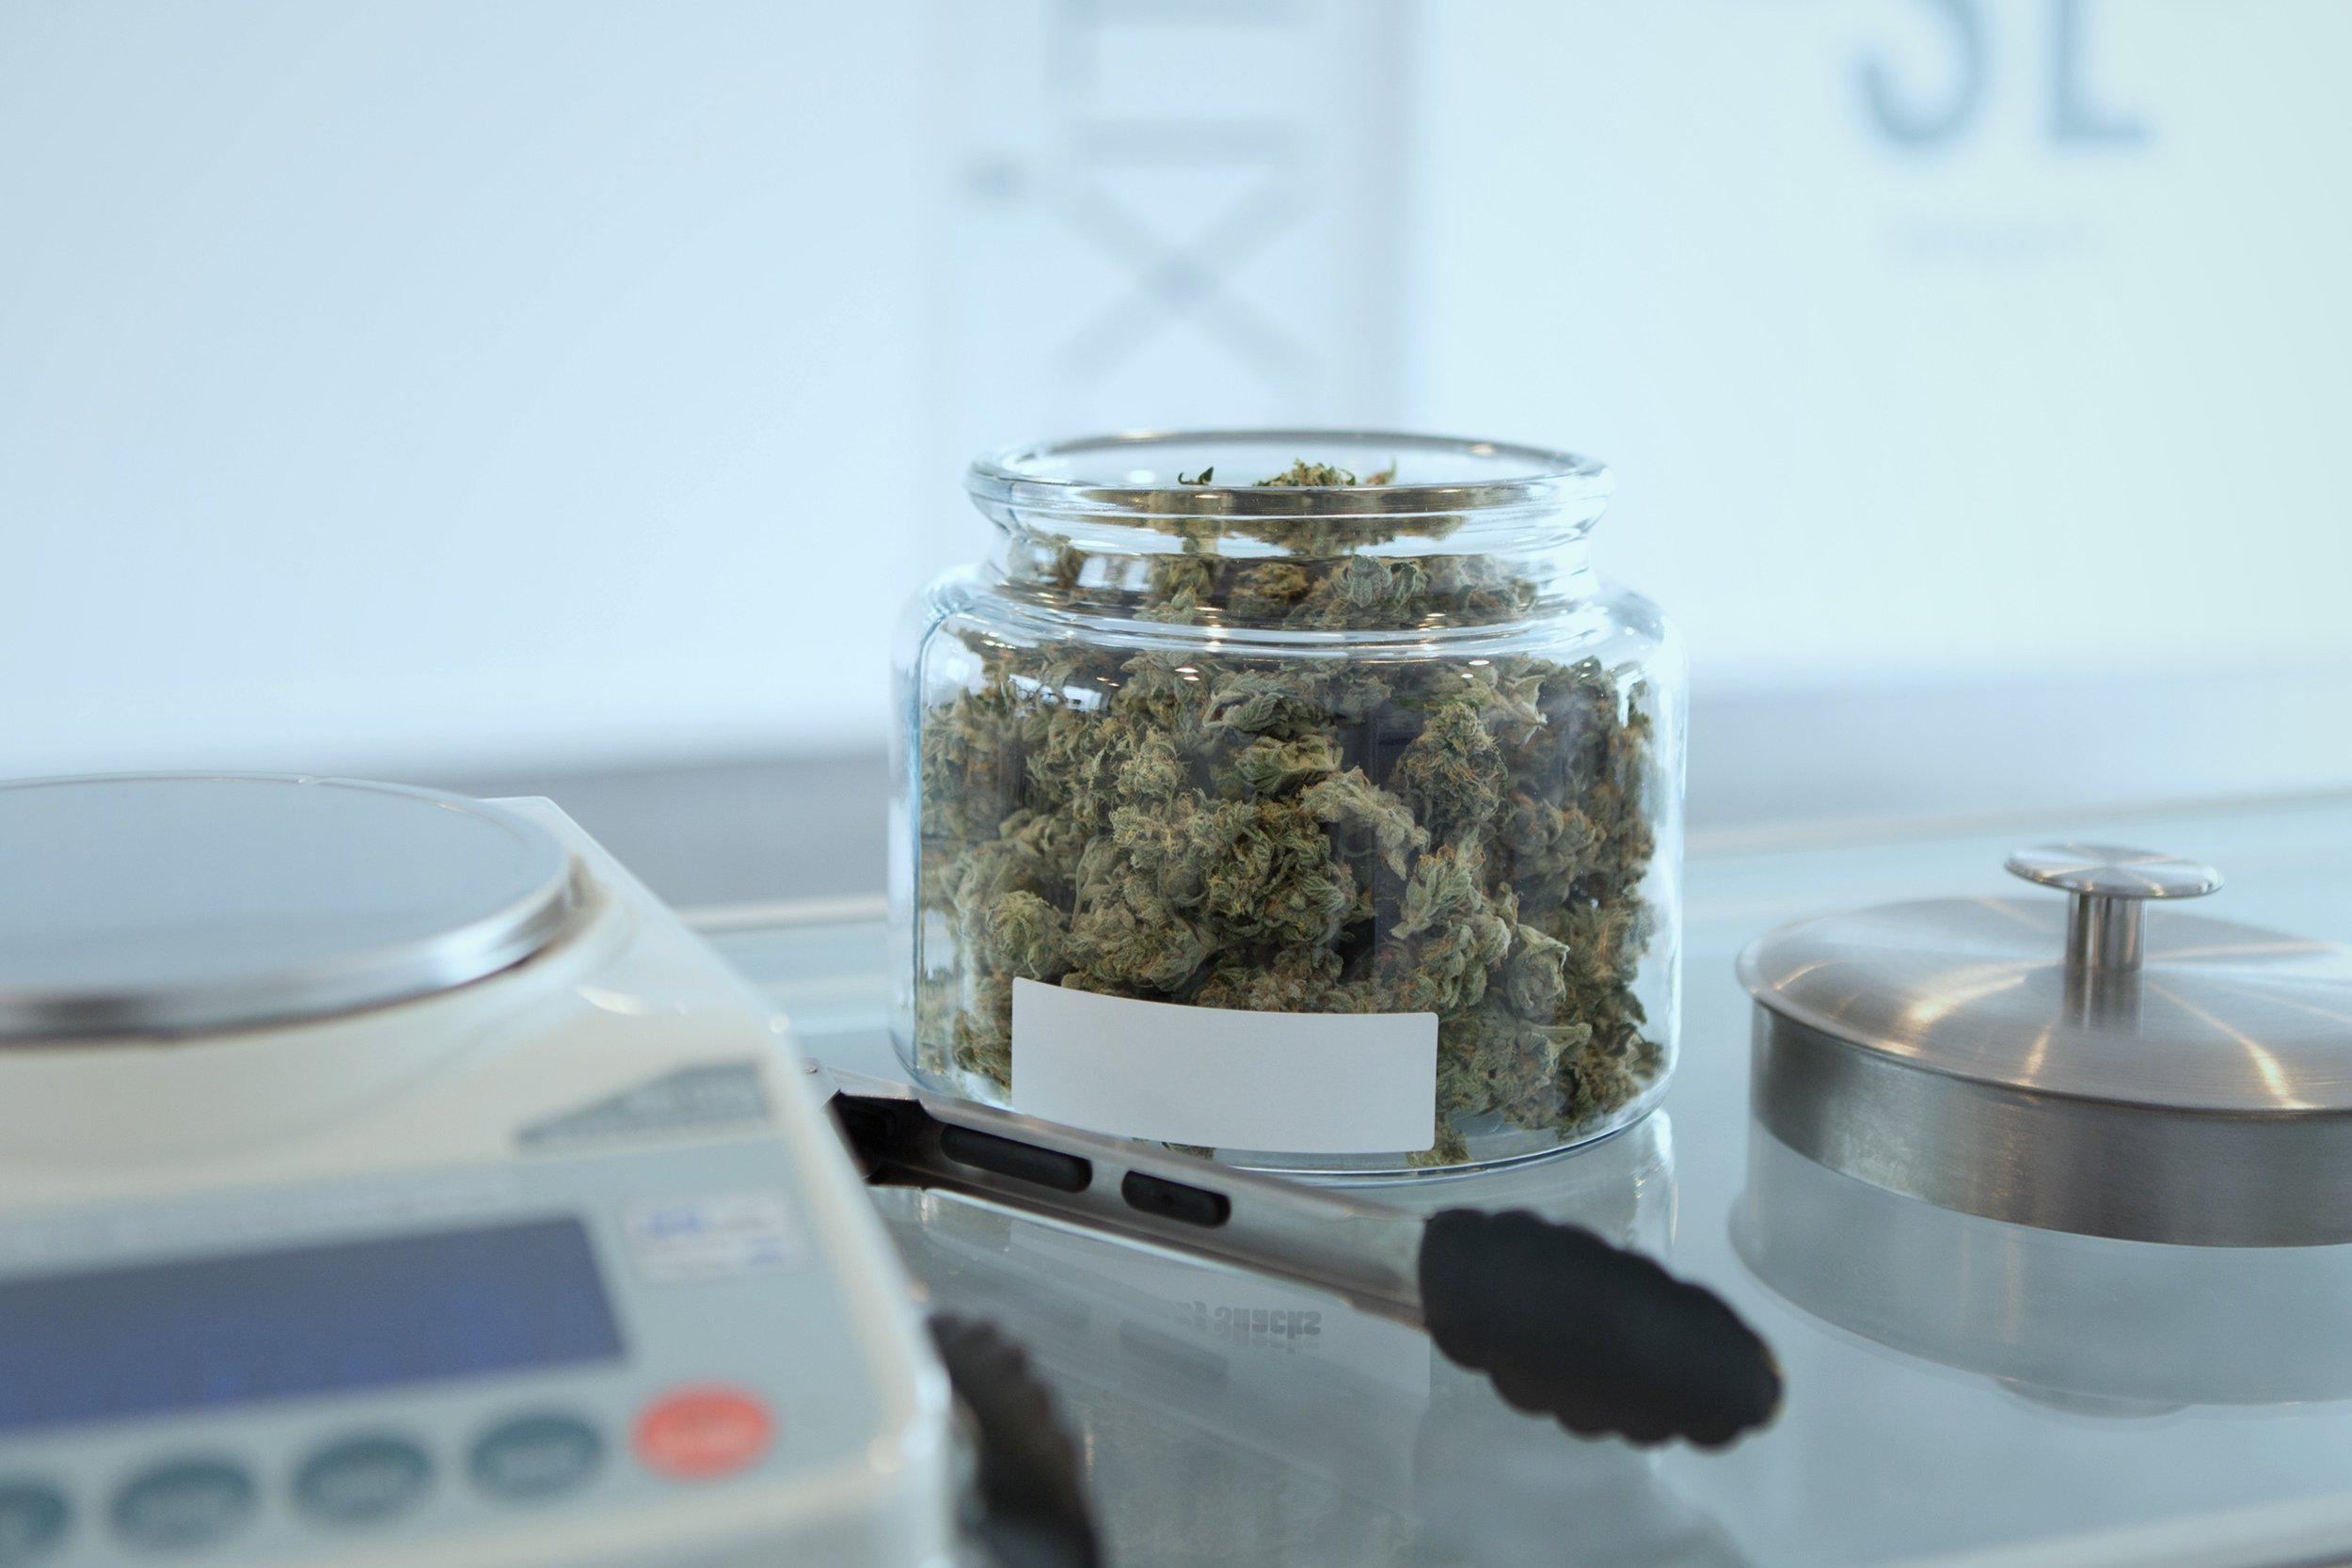 Cannabis in apothecary jars with a digital scale in the foreground.